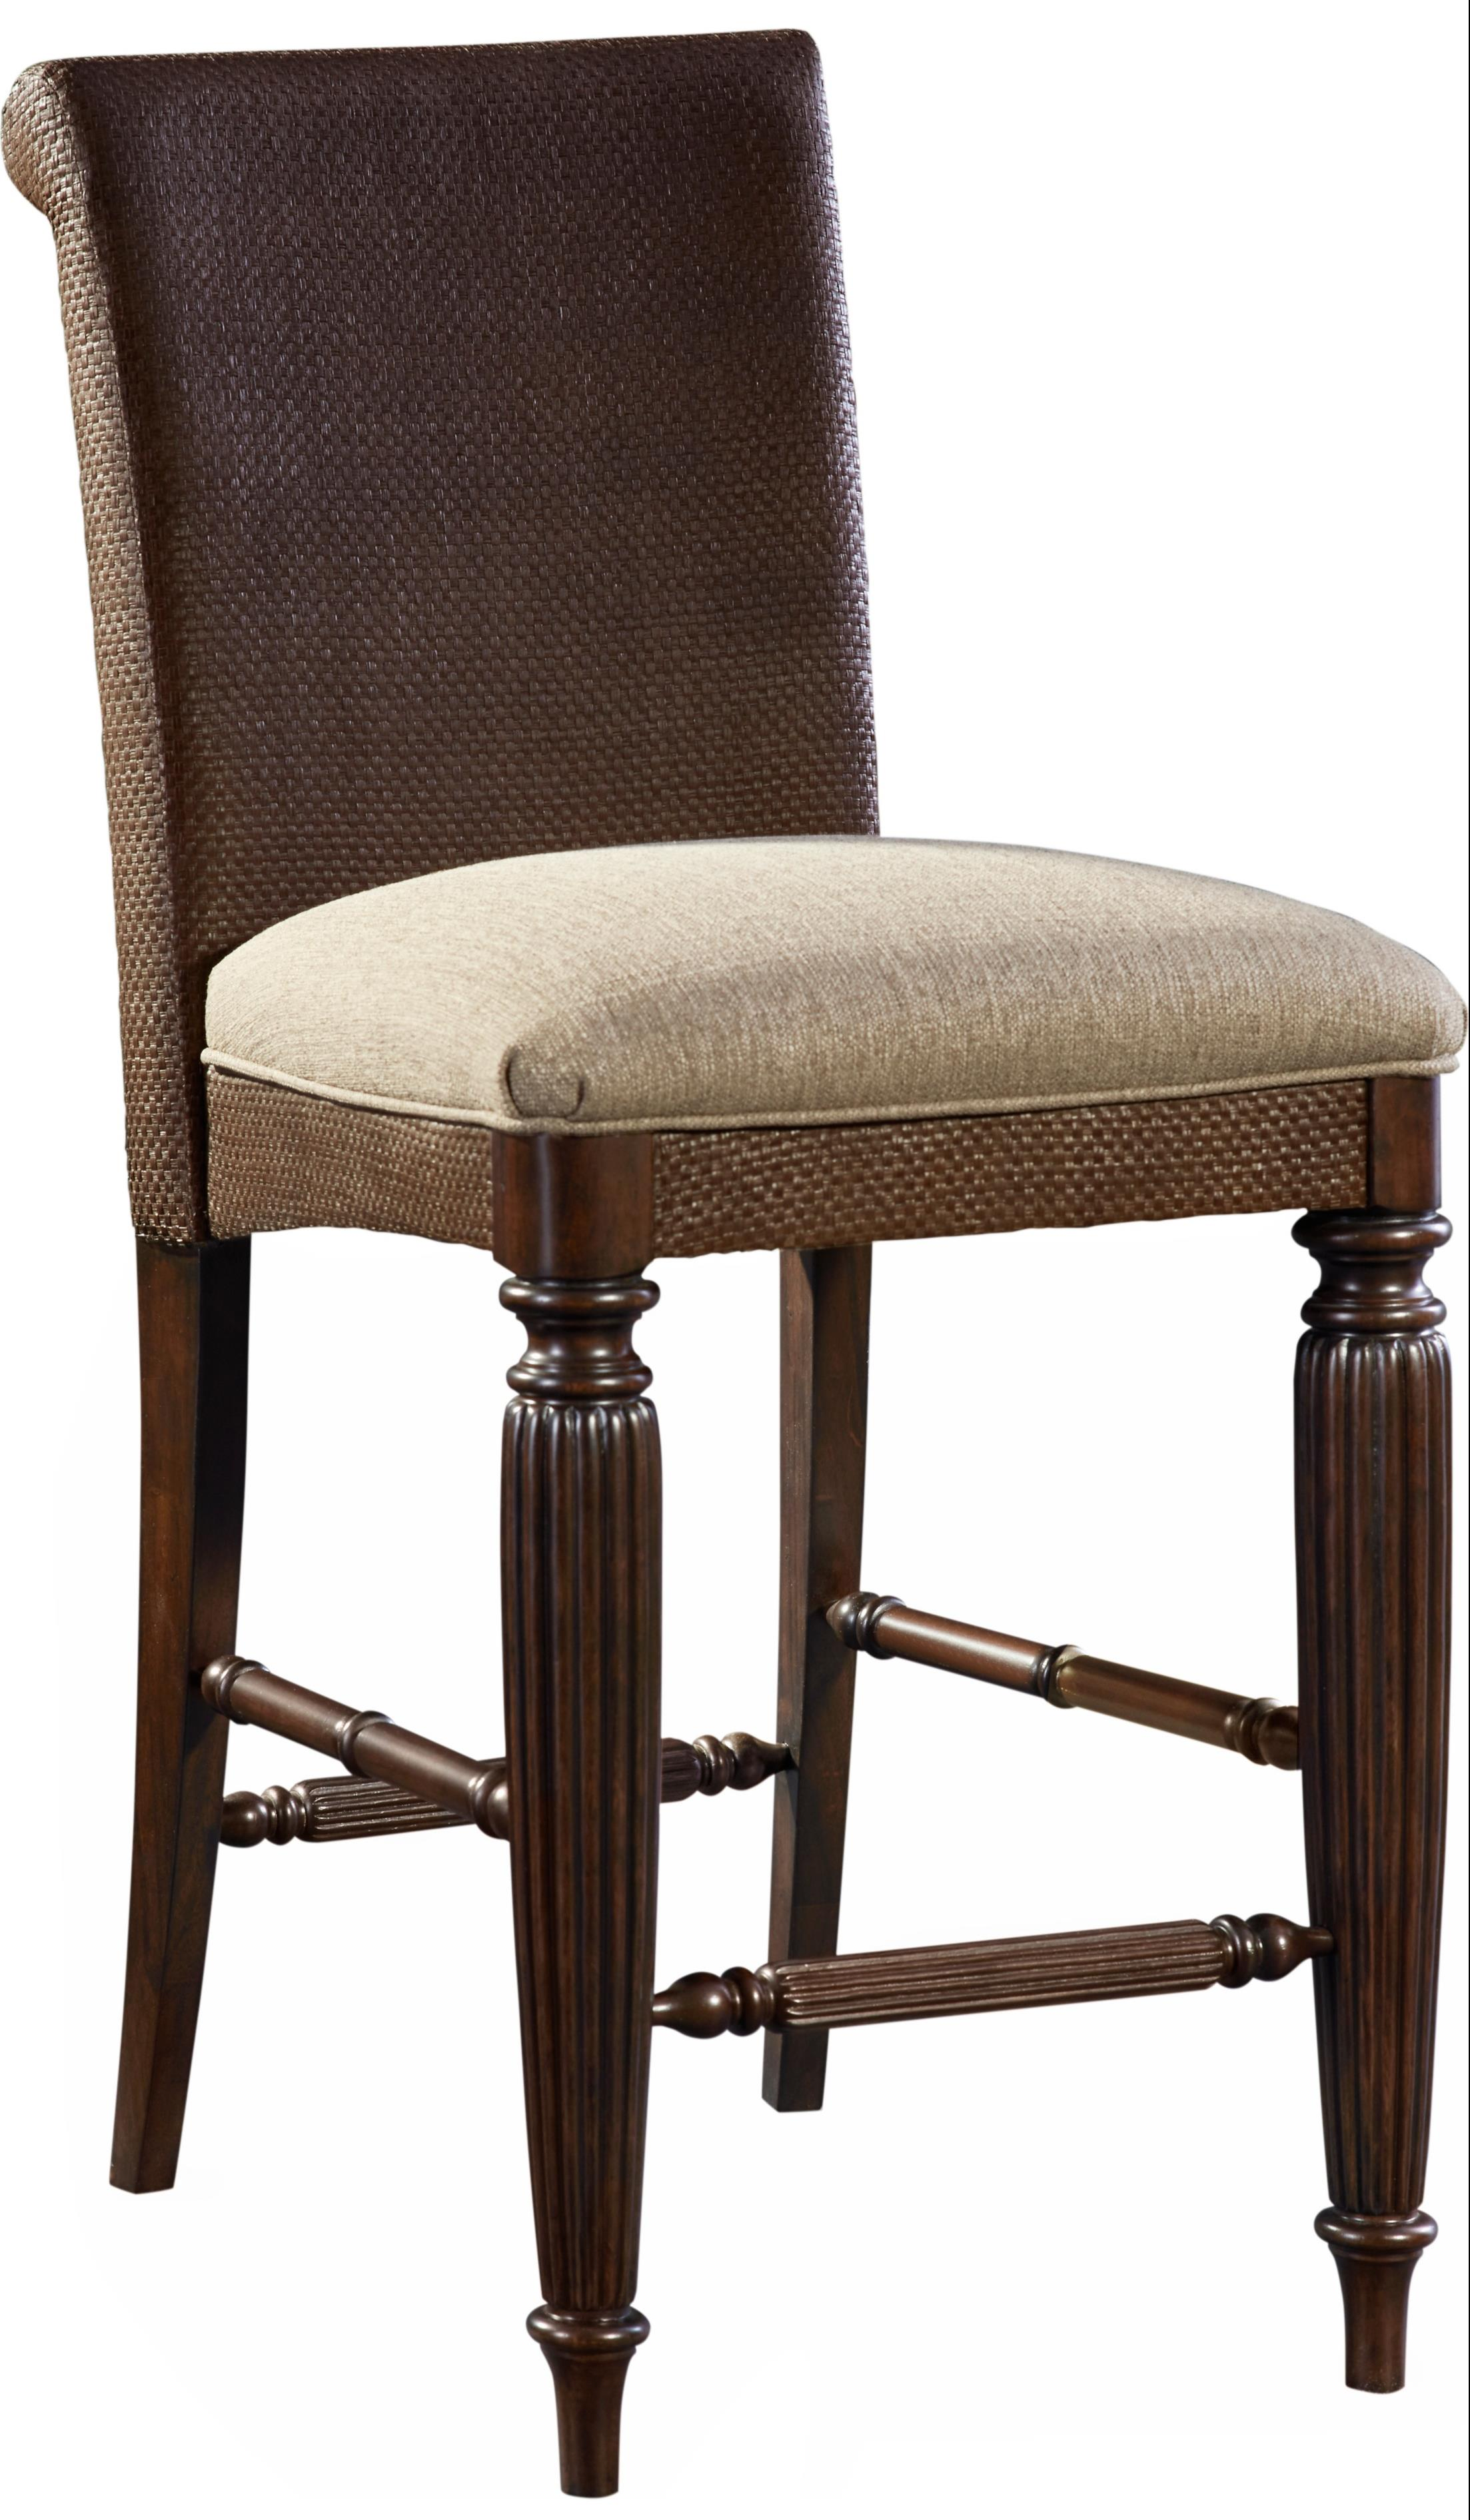 Broyhill Furniture Jessa Woven Upholstered Seat Counter Stool - Item Number: 4980-592